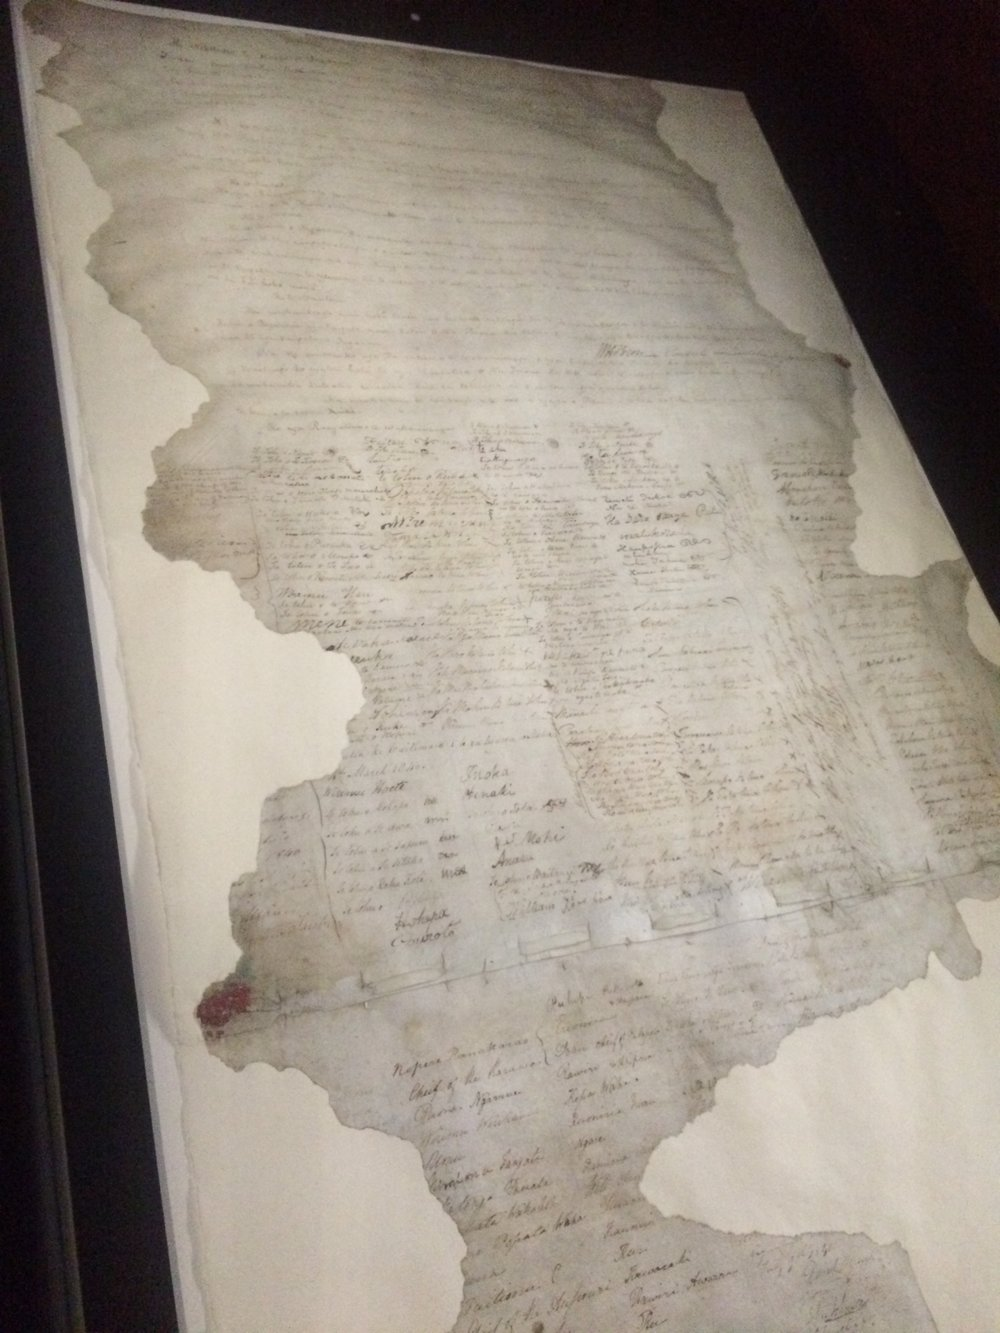 The original written treaty